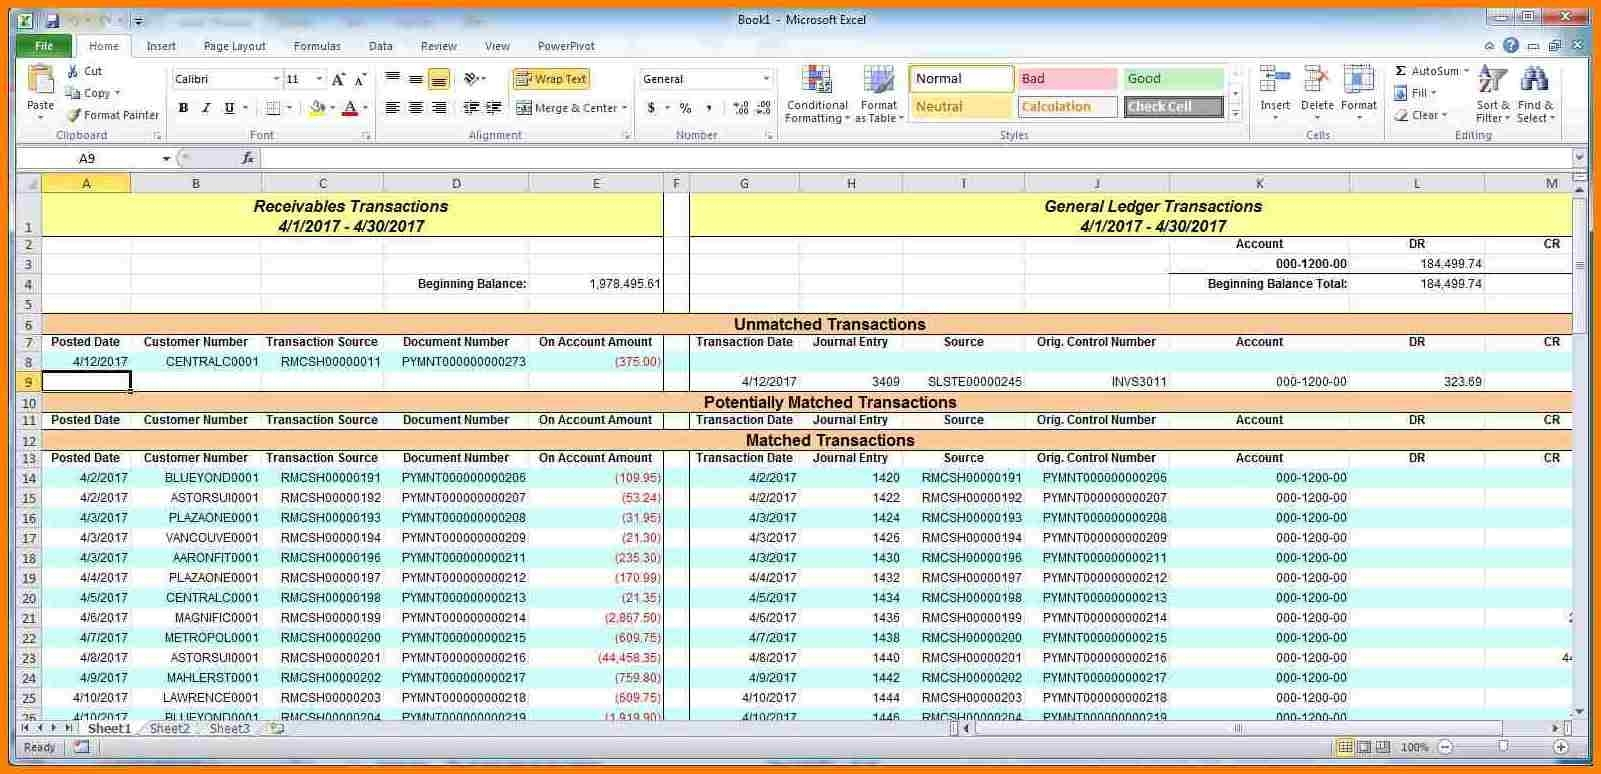 Accounts Payable Spreadsheet Template Free Within 11 Accounts Payable Ledger Excel Template Microsoft  Ledger Entries